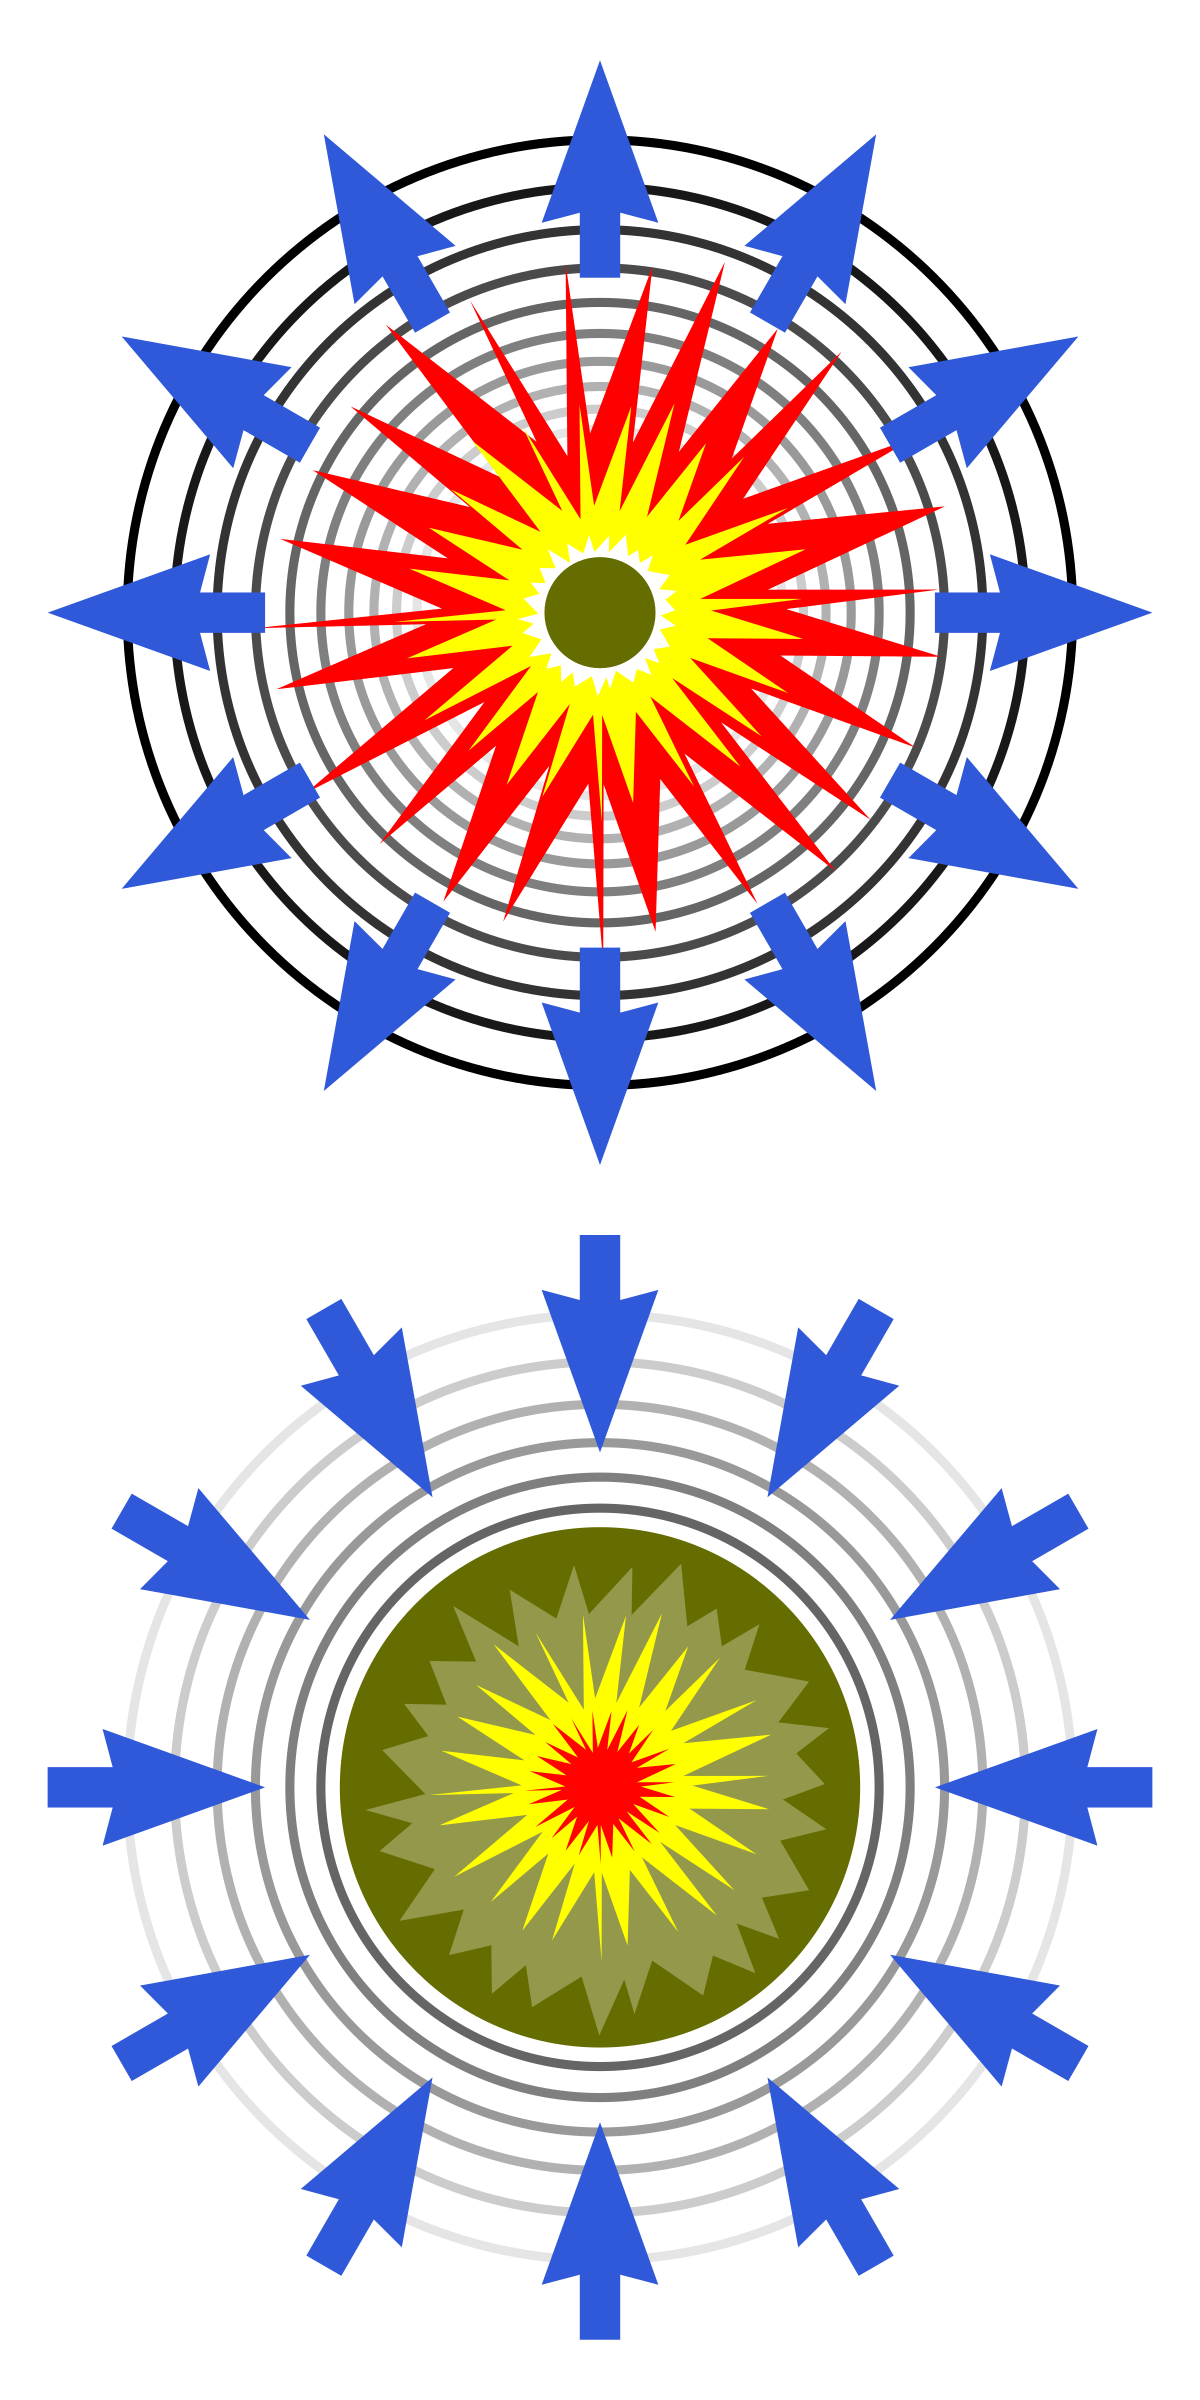 Planet clipart explosion. Implosion mechanical process wikipedia